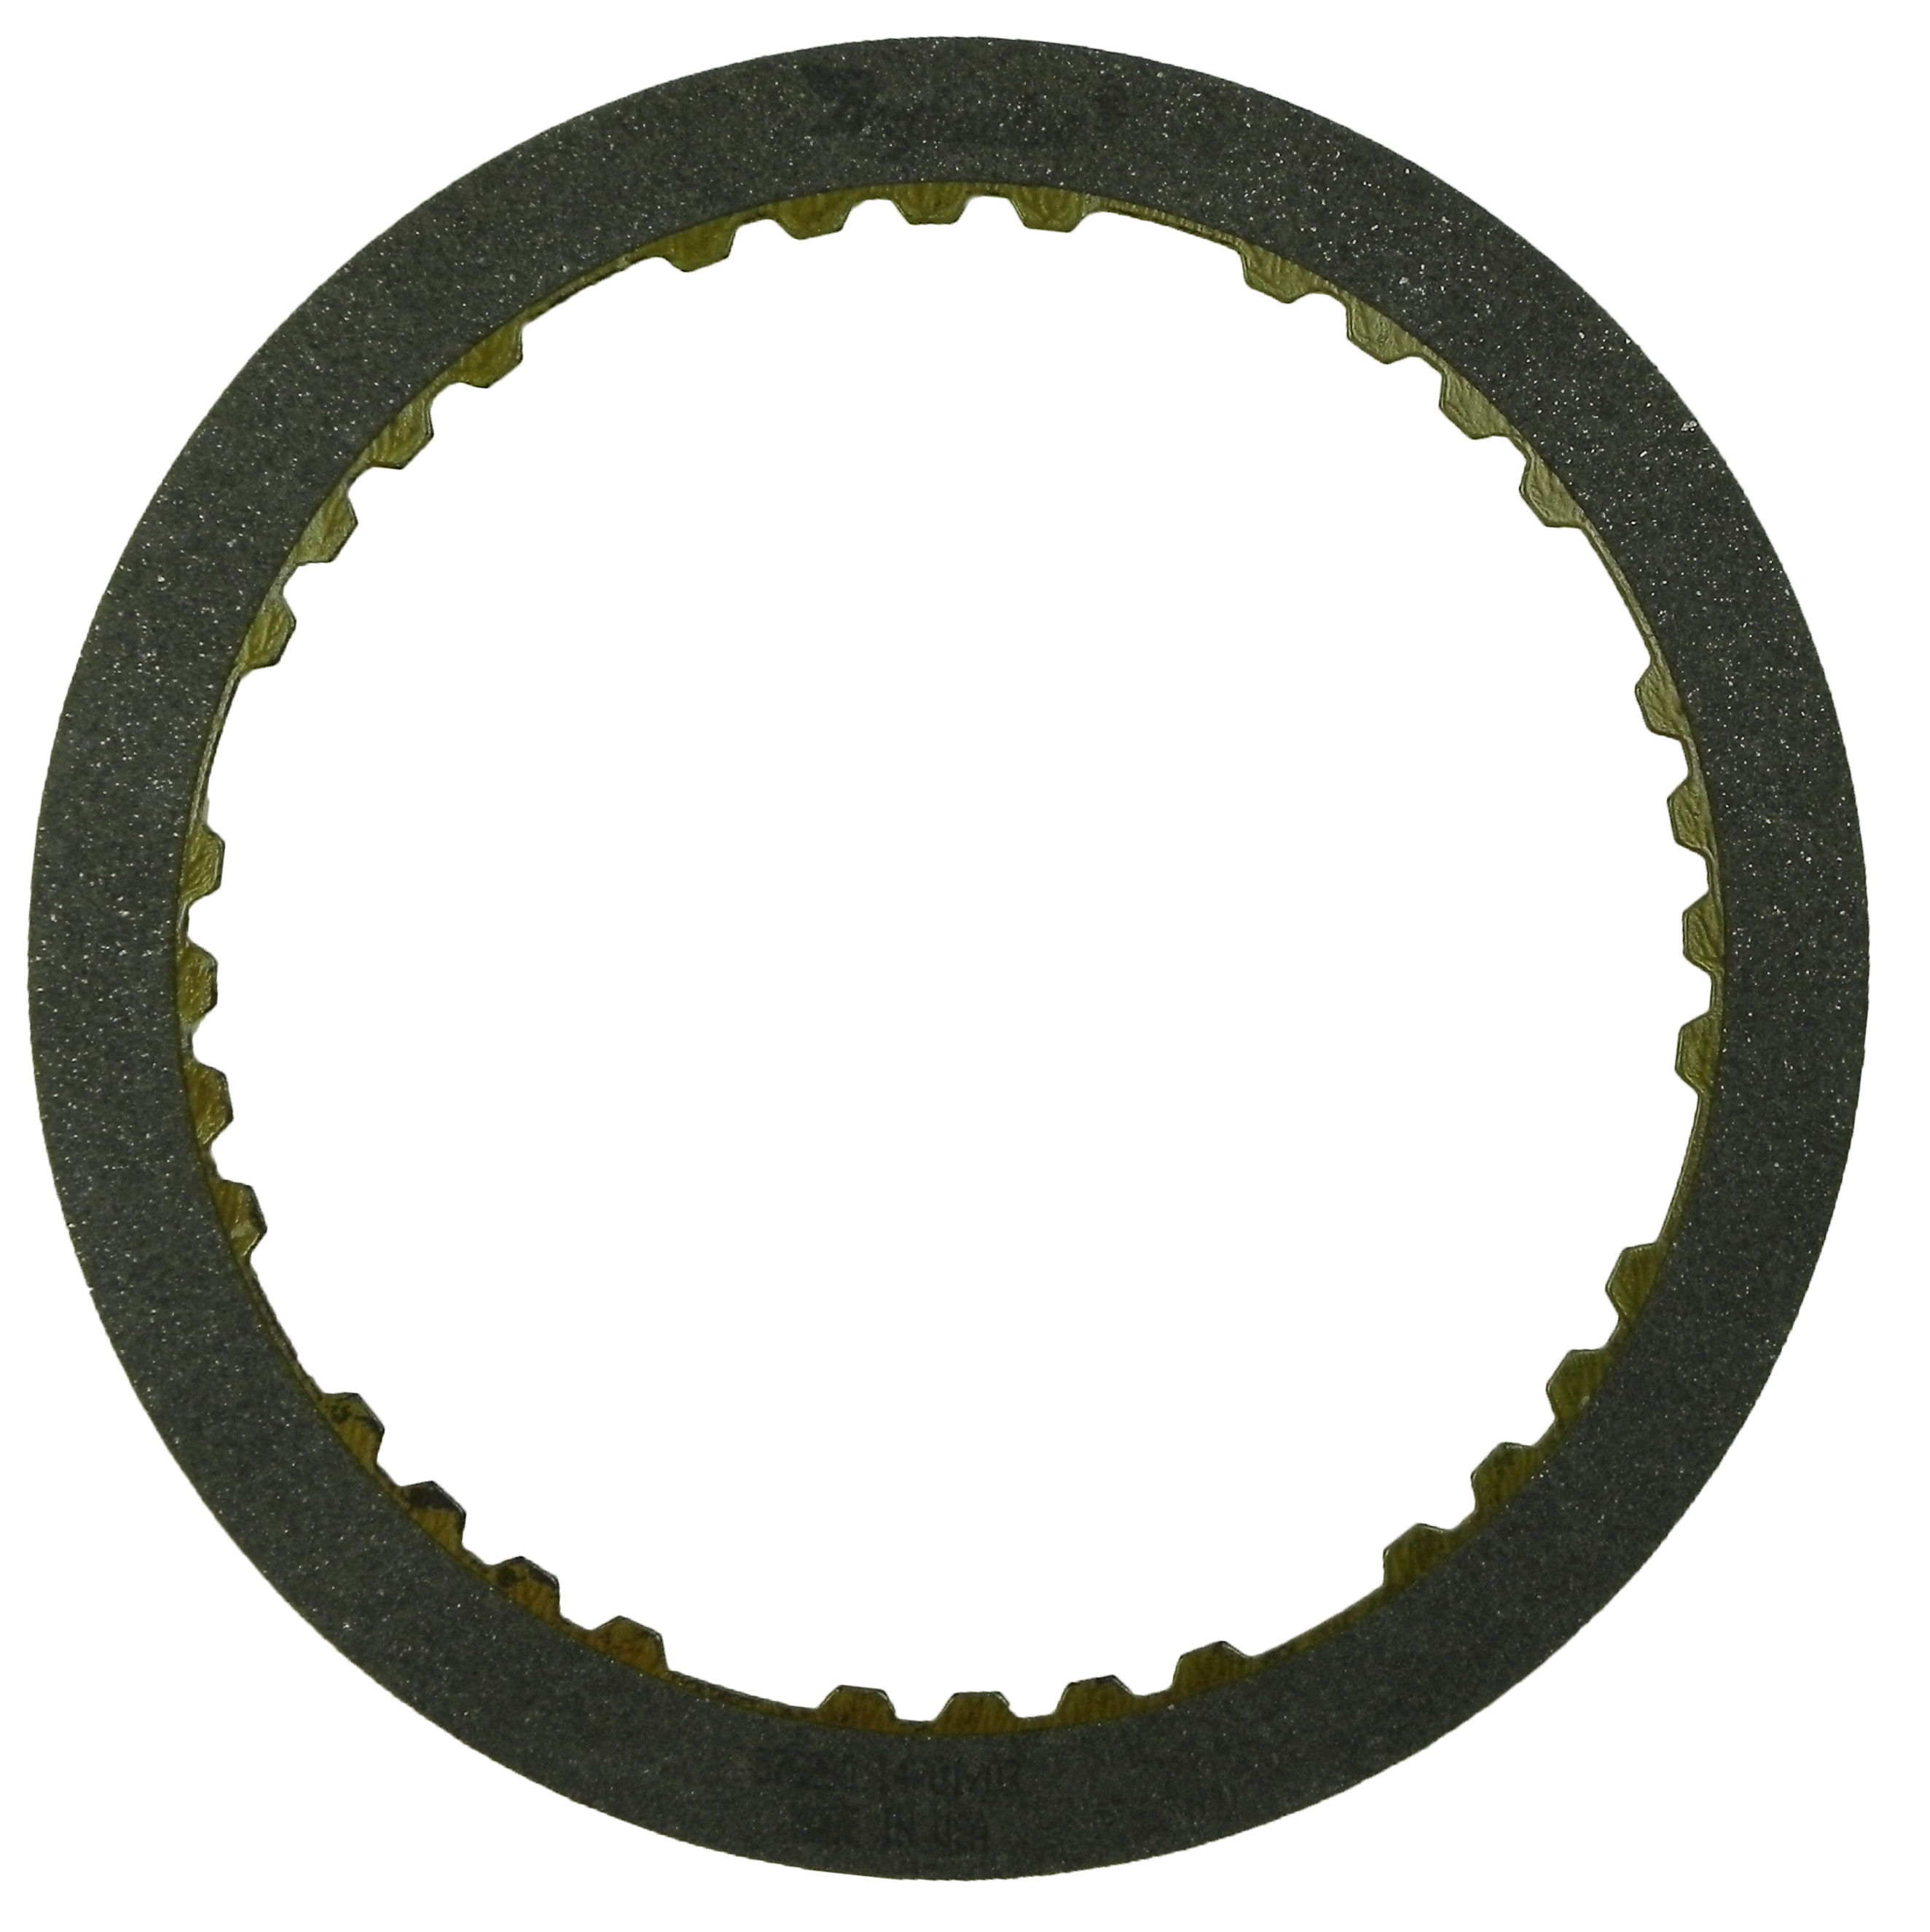 R576290 | 1985-ON Friction Clutch Plate High Energy Overdrive, Direct High Energy